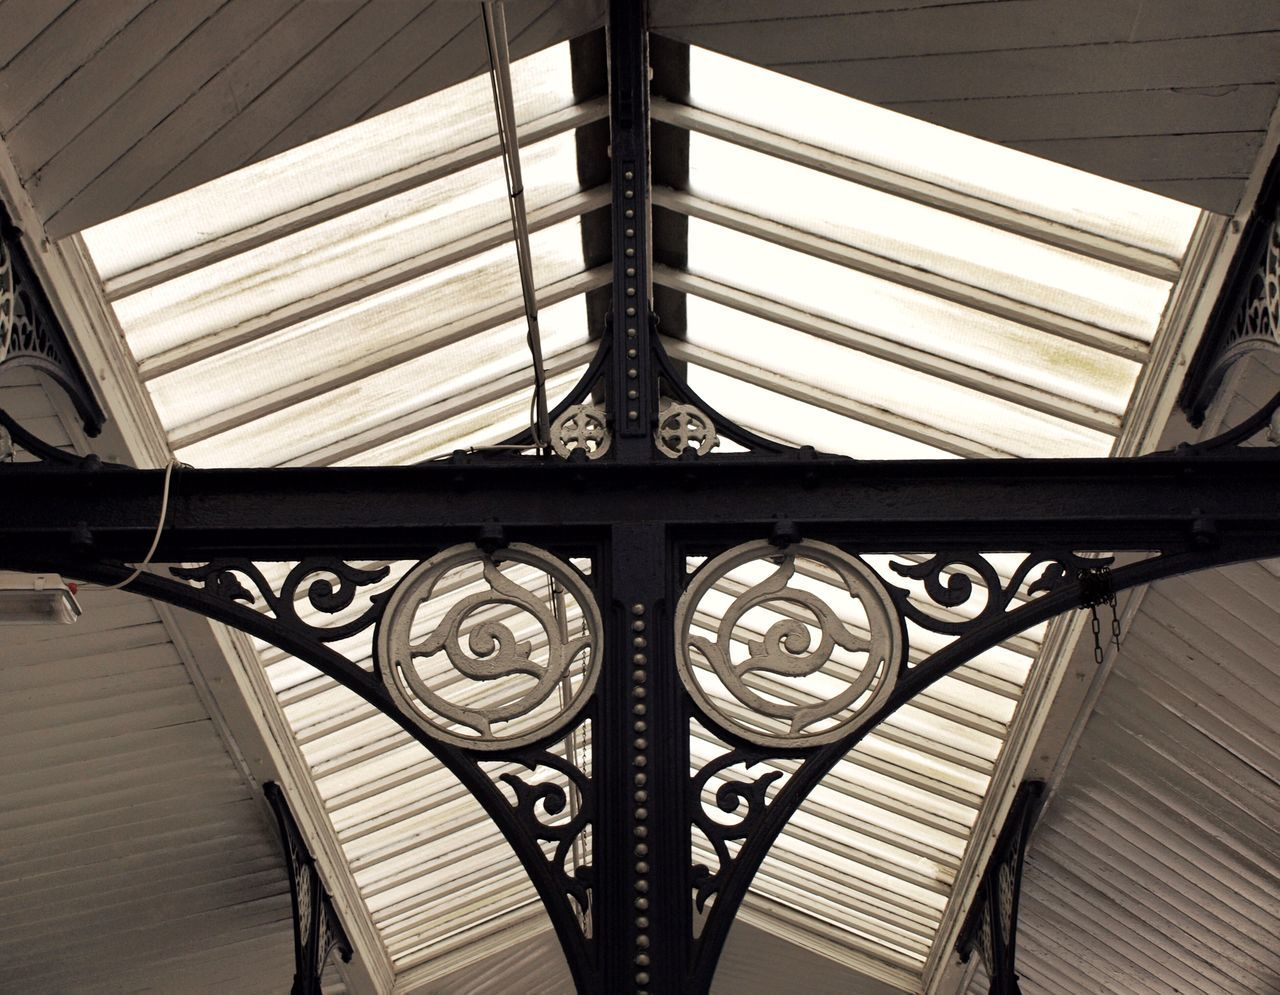 pattern, built structure, design, architecture, metal, window, close-up, no people, indoors, day, architectural design